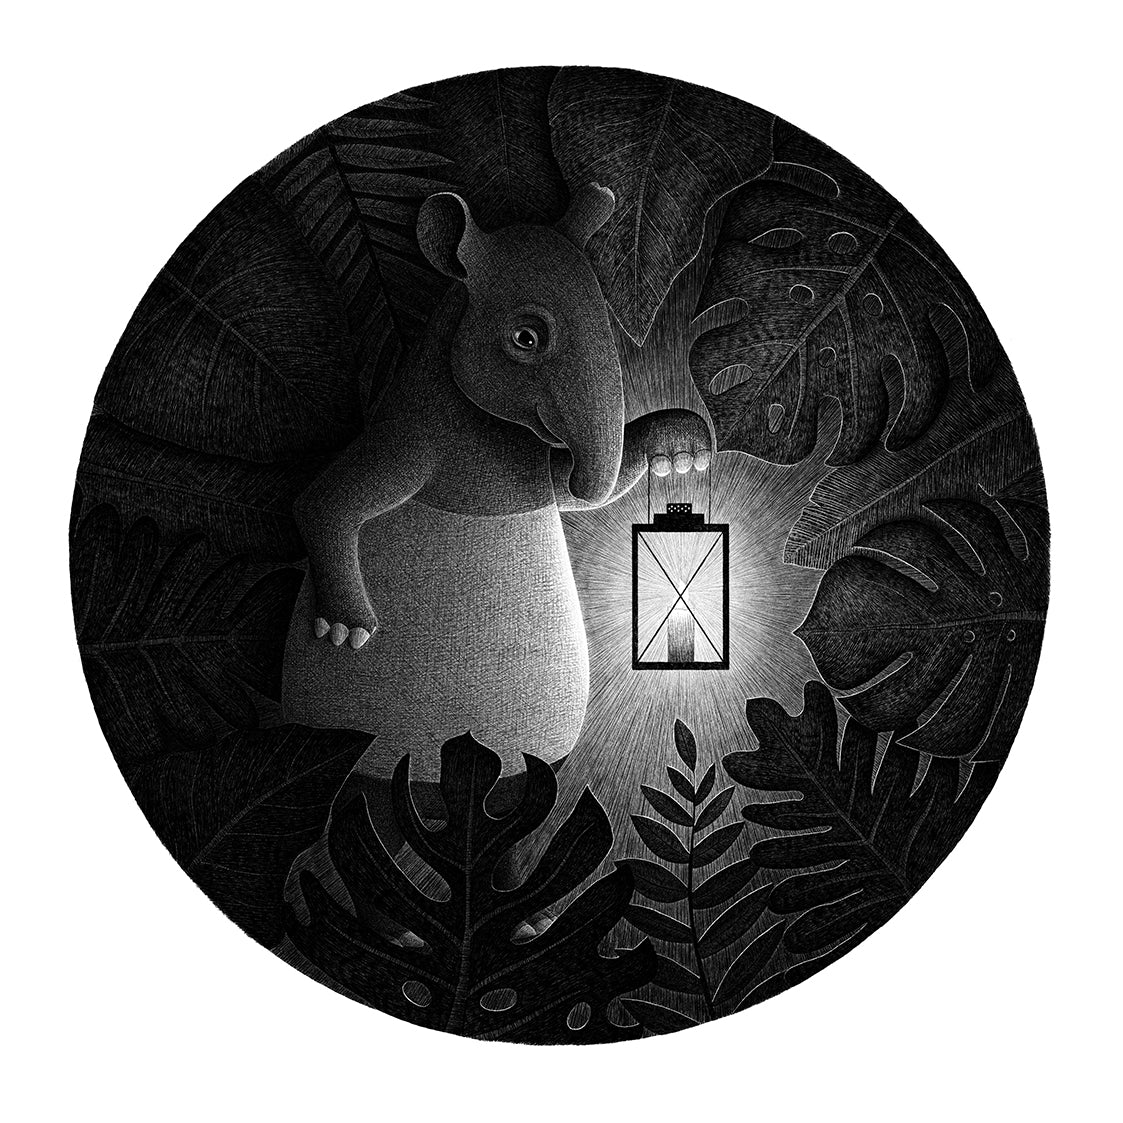 Tapirs are night creatures | Black and White Illustration Art Prints for Sale | Lucia Eggenhoffer